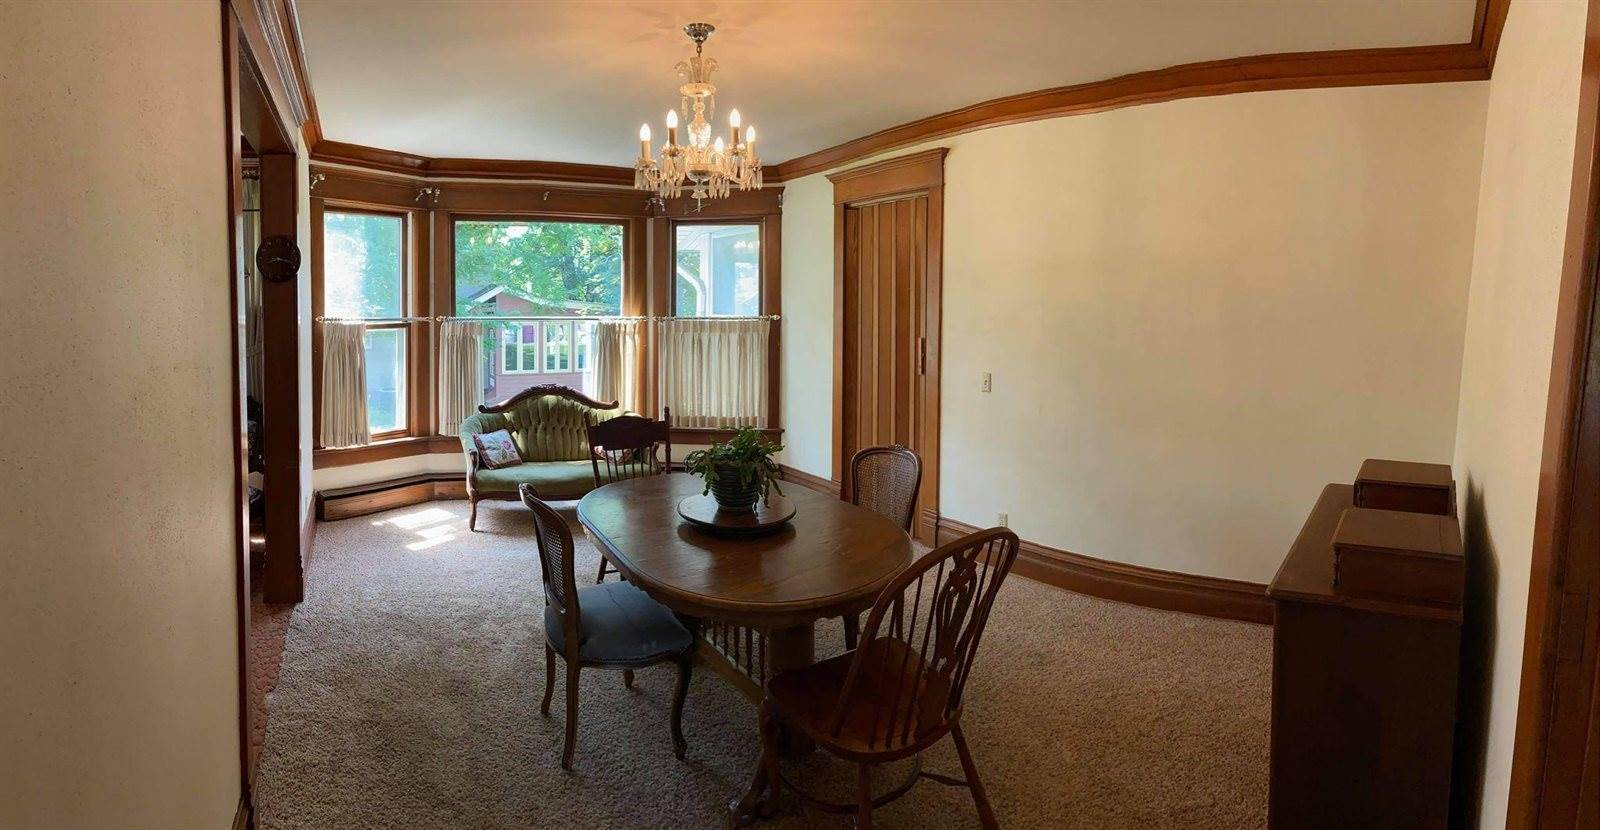 910 Whitewater Ave, Fort Atkinson, WI 53538